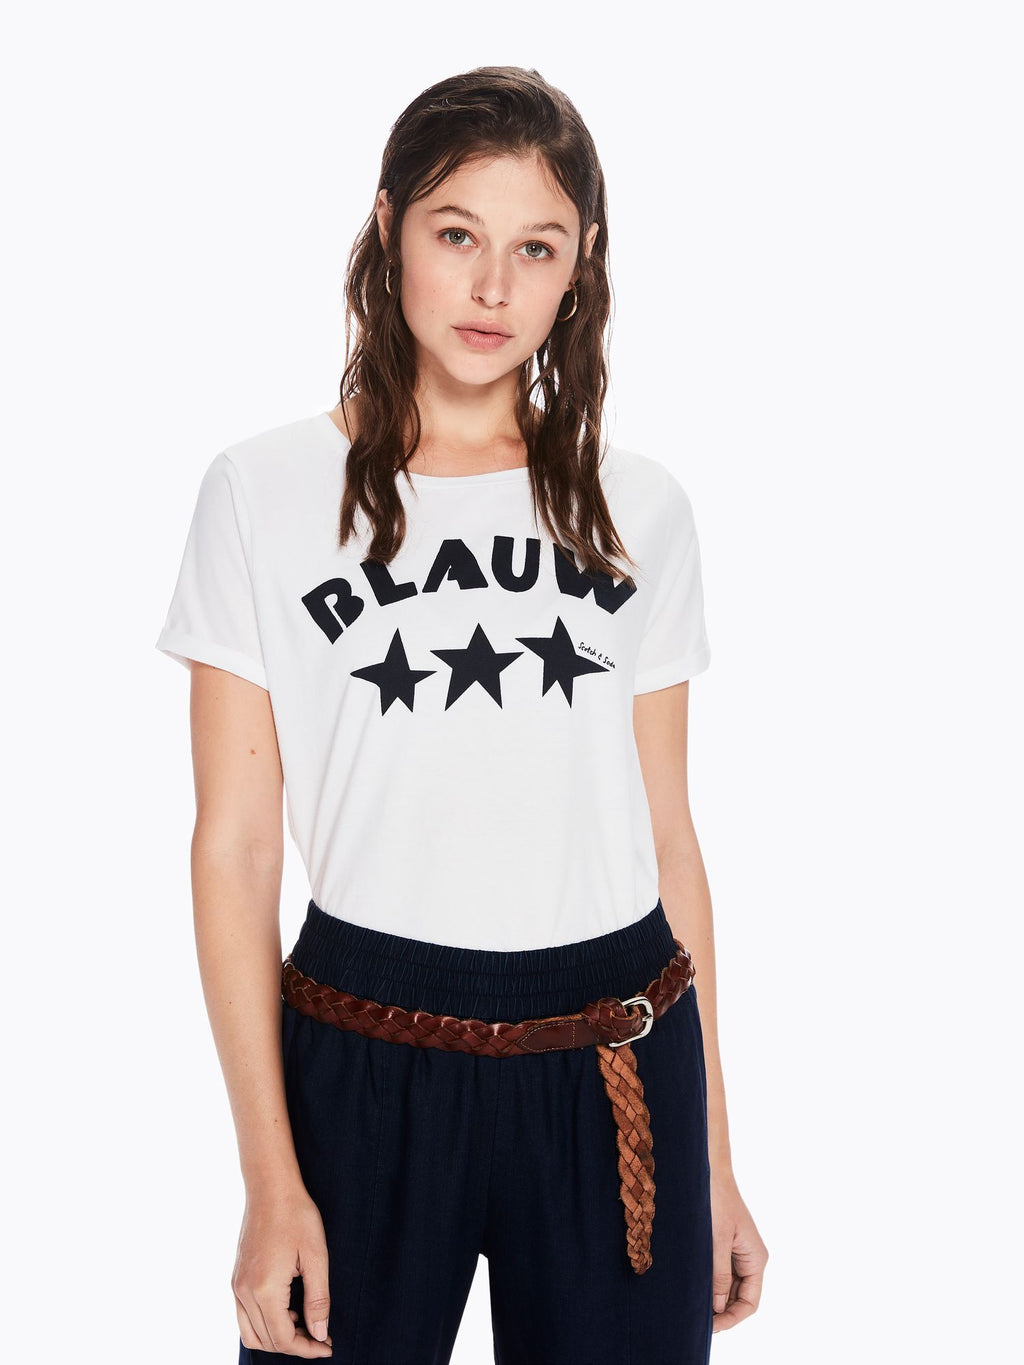 SCOTCH AND SODA - Graphic Logo Tee online at PAYA boutique